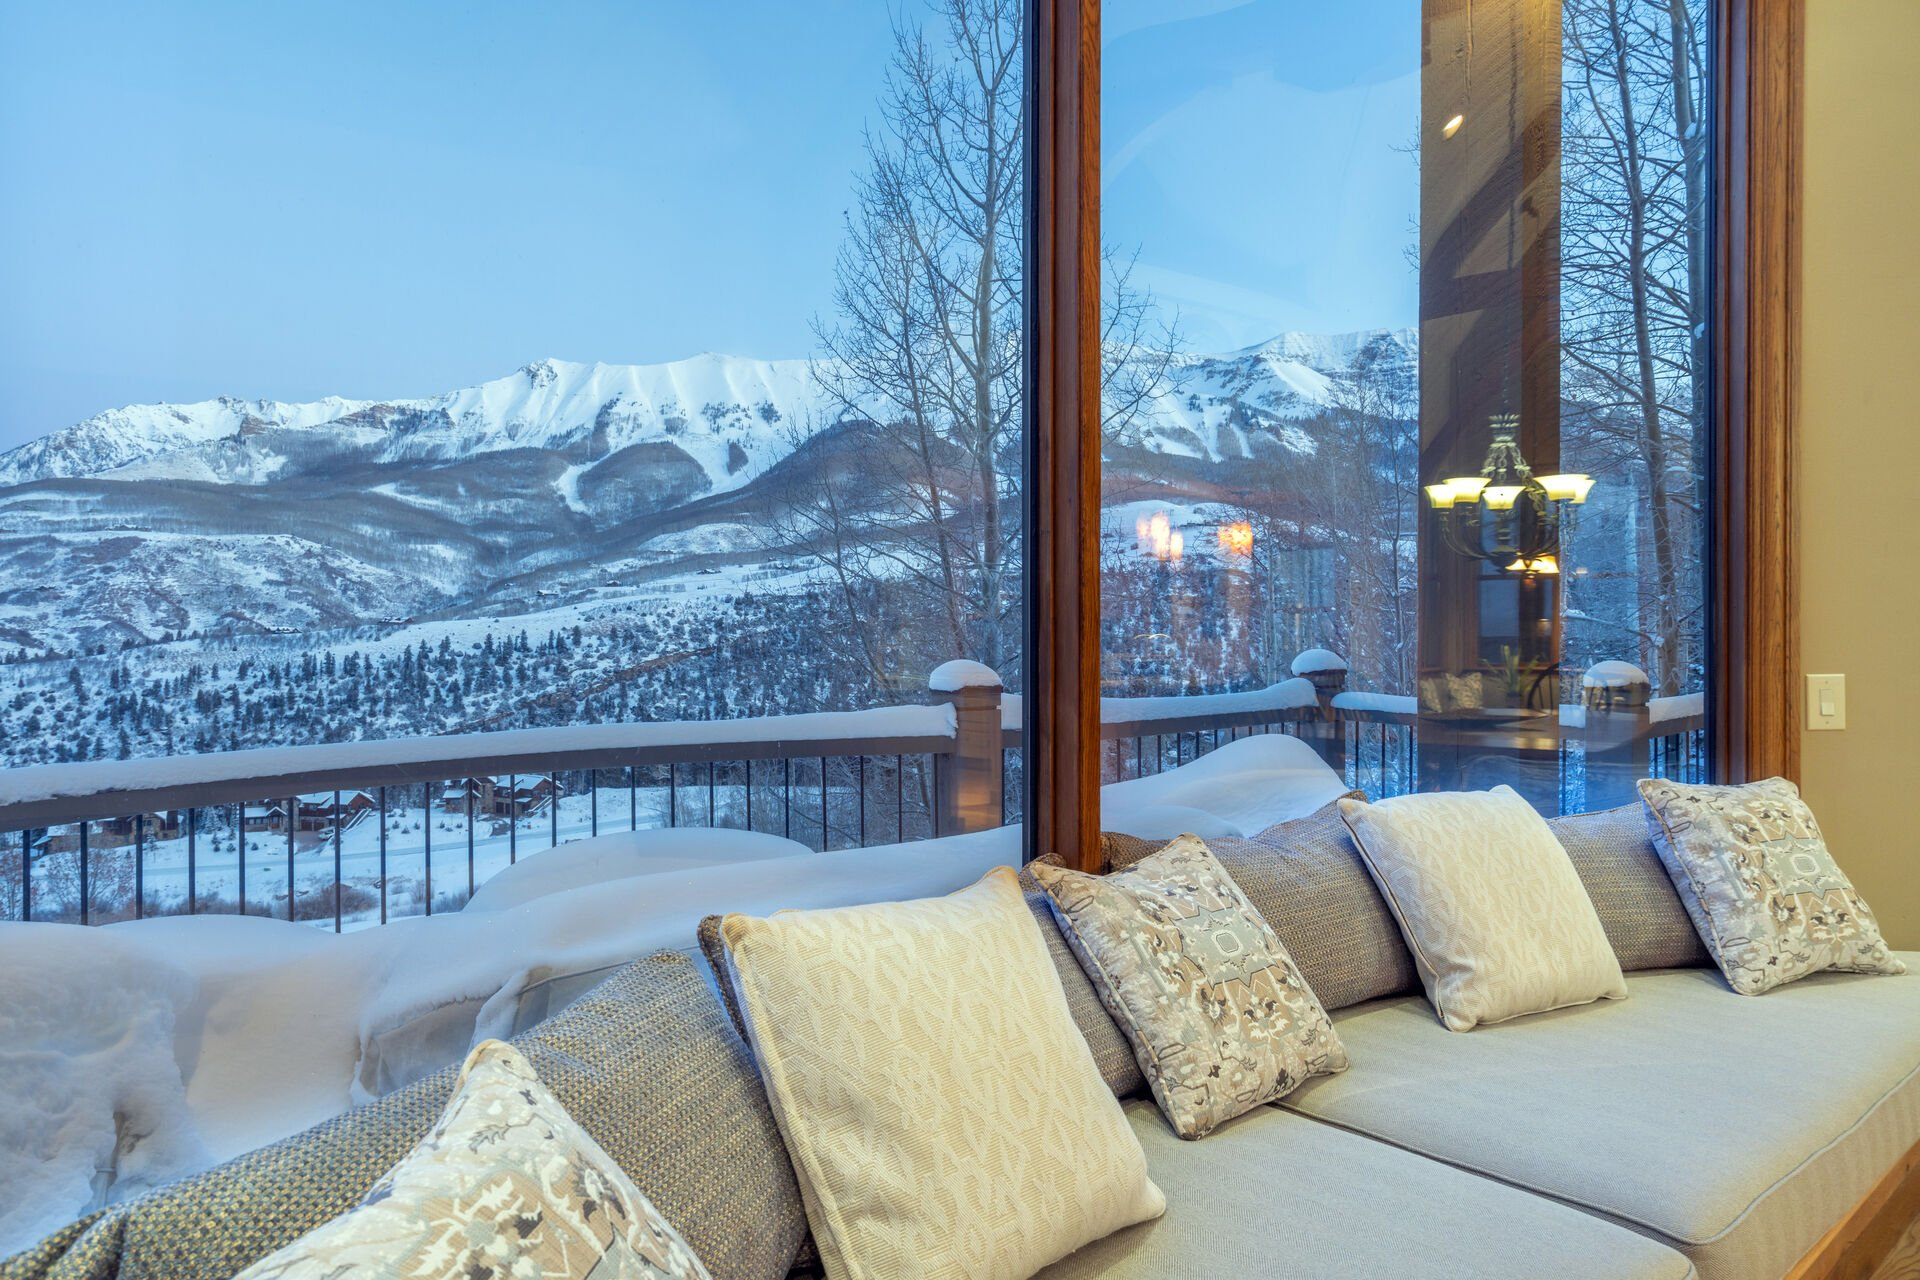 Large windows behind a long cushioned bench look out onto a snowy landscape.